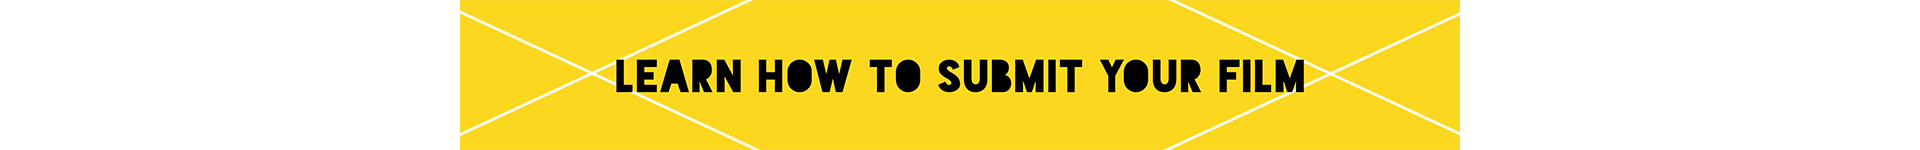 Submit-Your-Film-Here